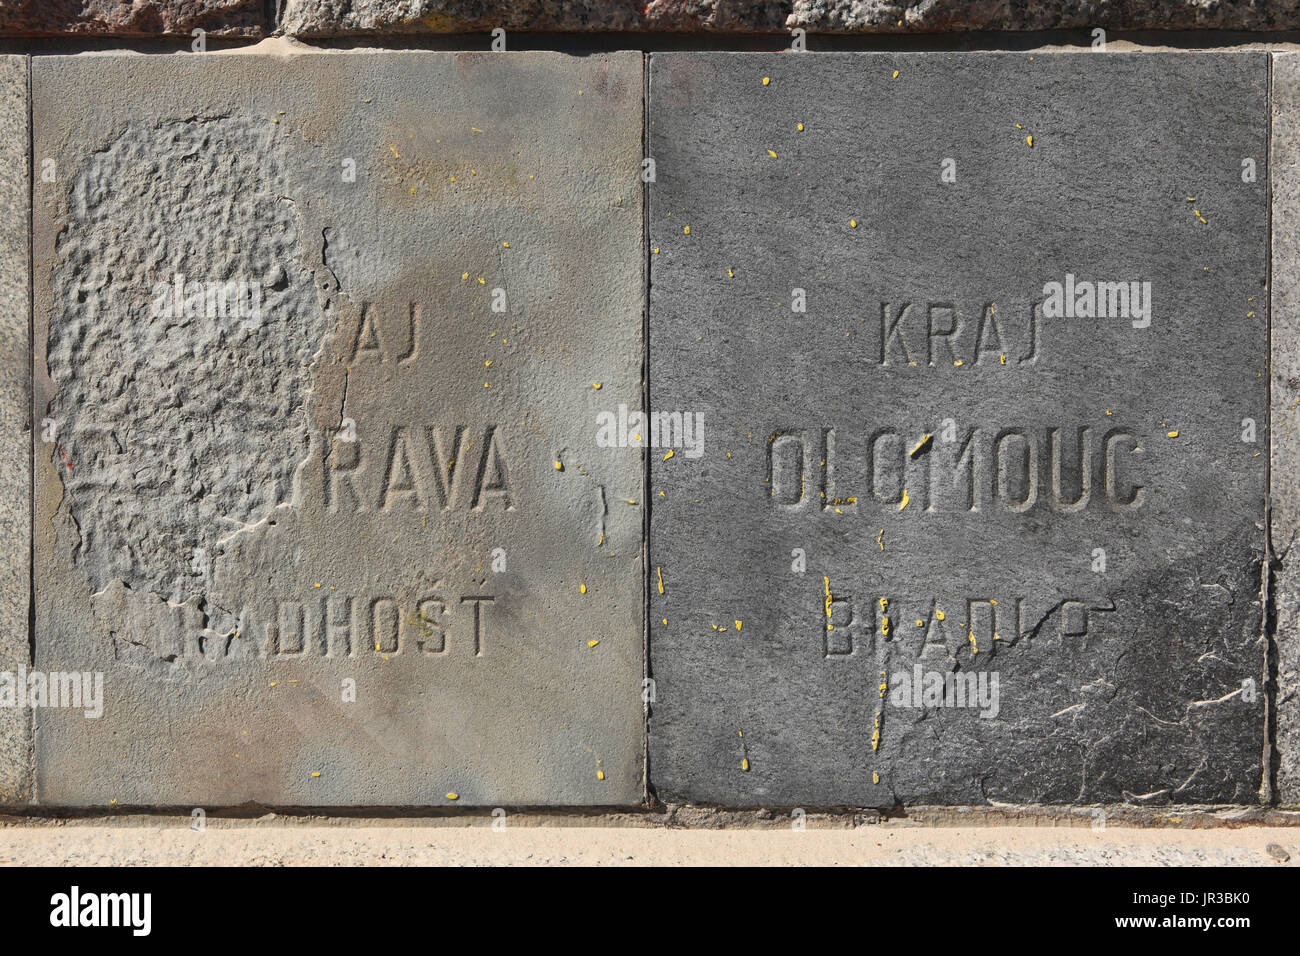 Surviving foundation stones of the monument to Soviet dictator Joseph Stalin in Letna Park in Prague, Czech Republic. The foundation stone from the summit of Mount Radhošt in the Moravian-Silesian Beskids in Ostrava Region, Czech Republic, is seen in the left, while the foundation stone from the summit of Mount Bradlo in Olomouc Region, Czech Republic, is seen in the right. - Stock Image